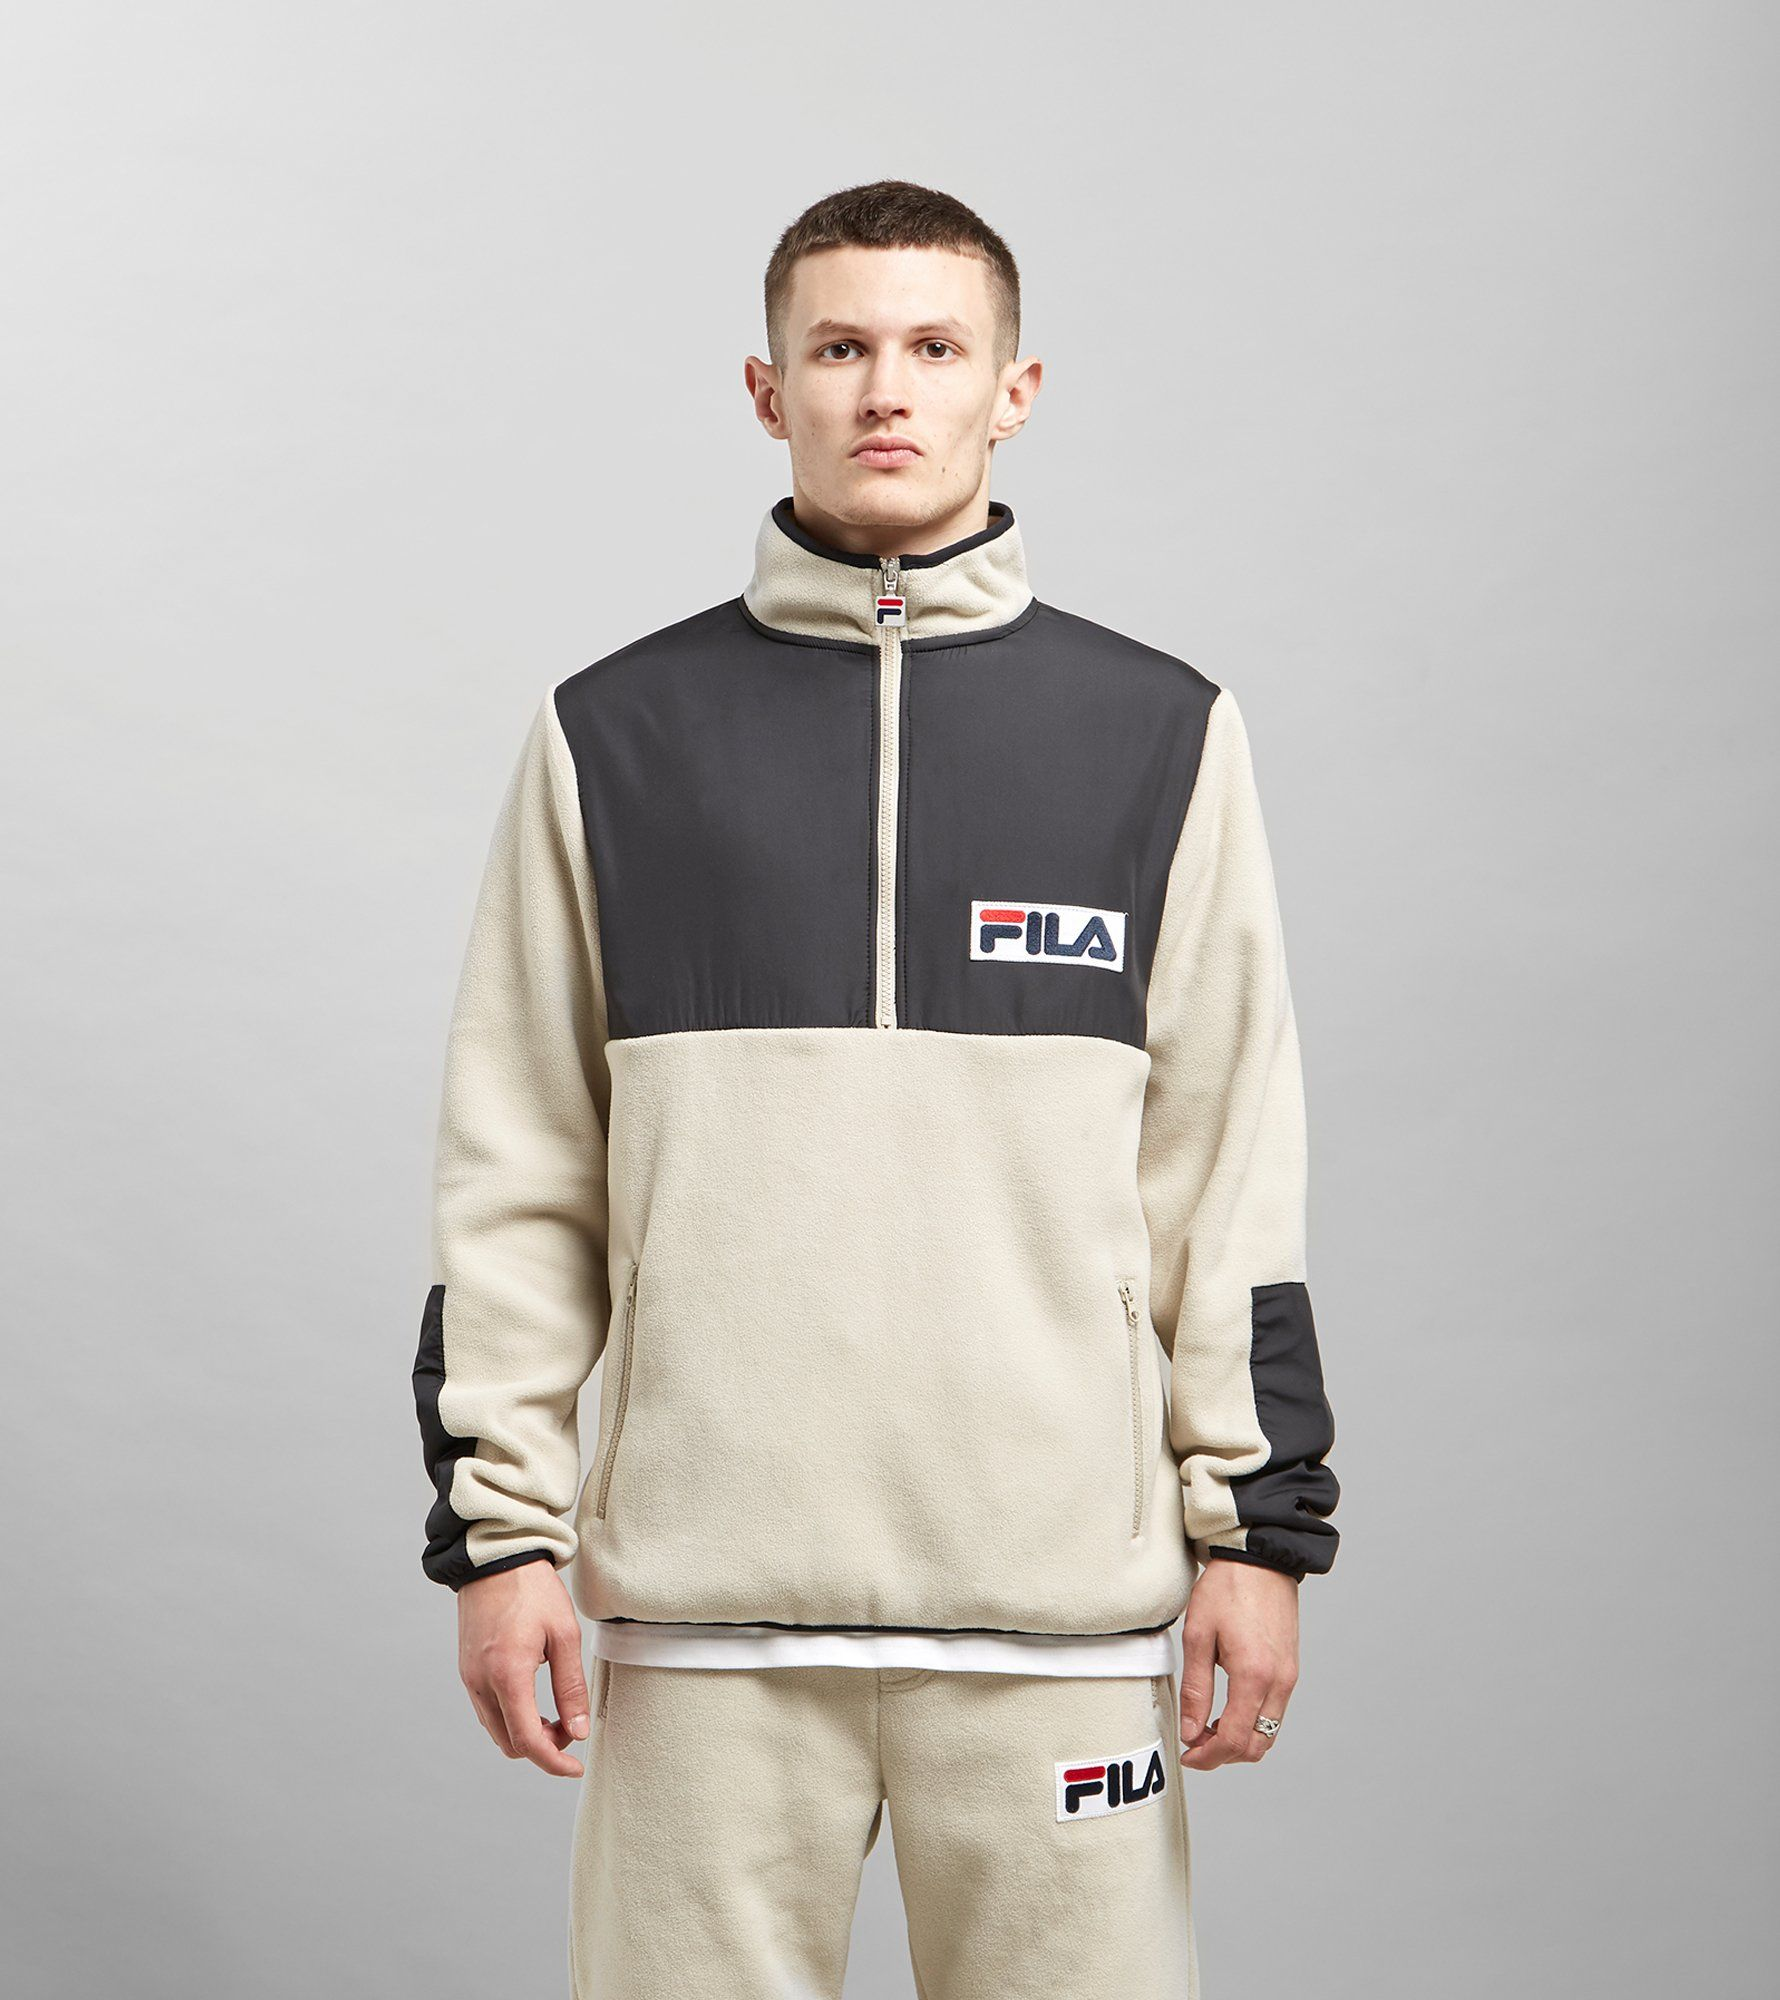 Fila Nevosa Fleece